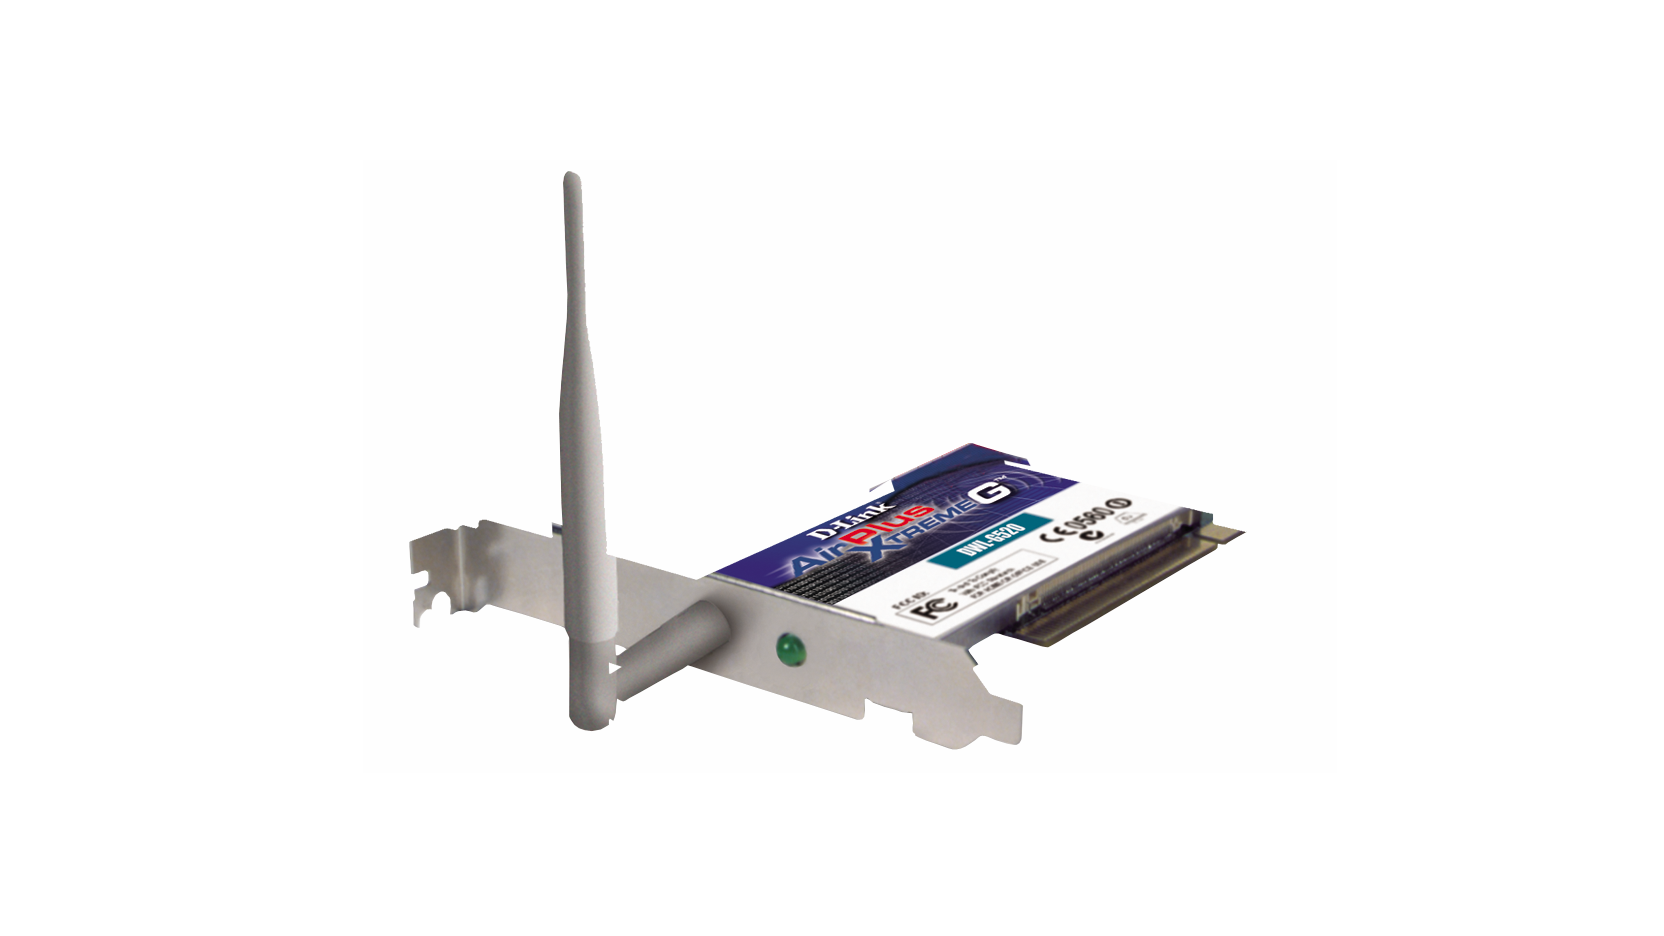 D-LINK AIRPLUS XTREME G DWL-G520 PCI WINDOWS 8.1 DRIVER DOWNLOAD